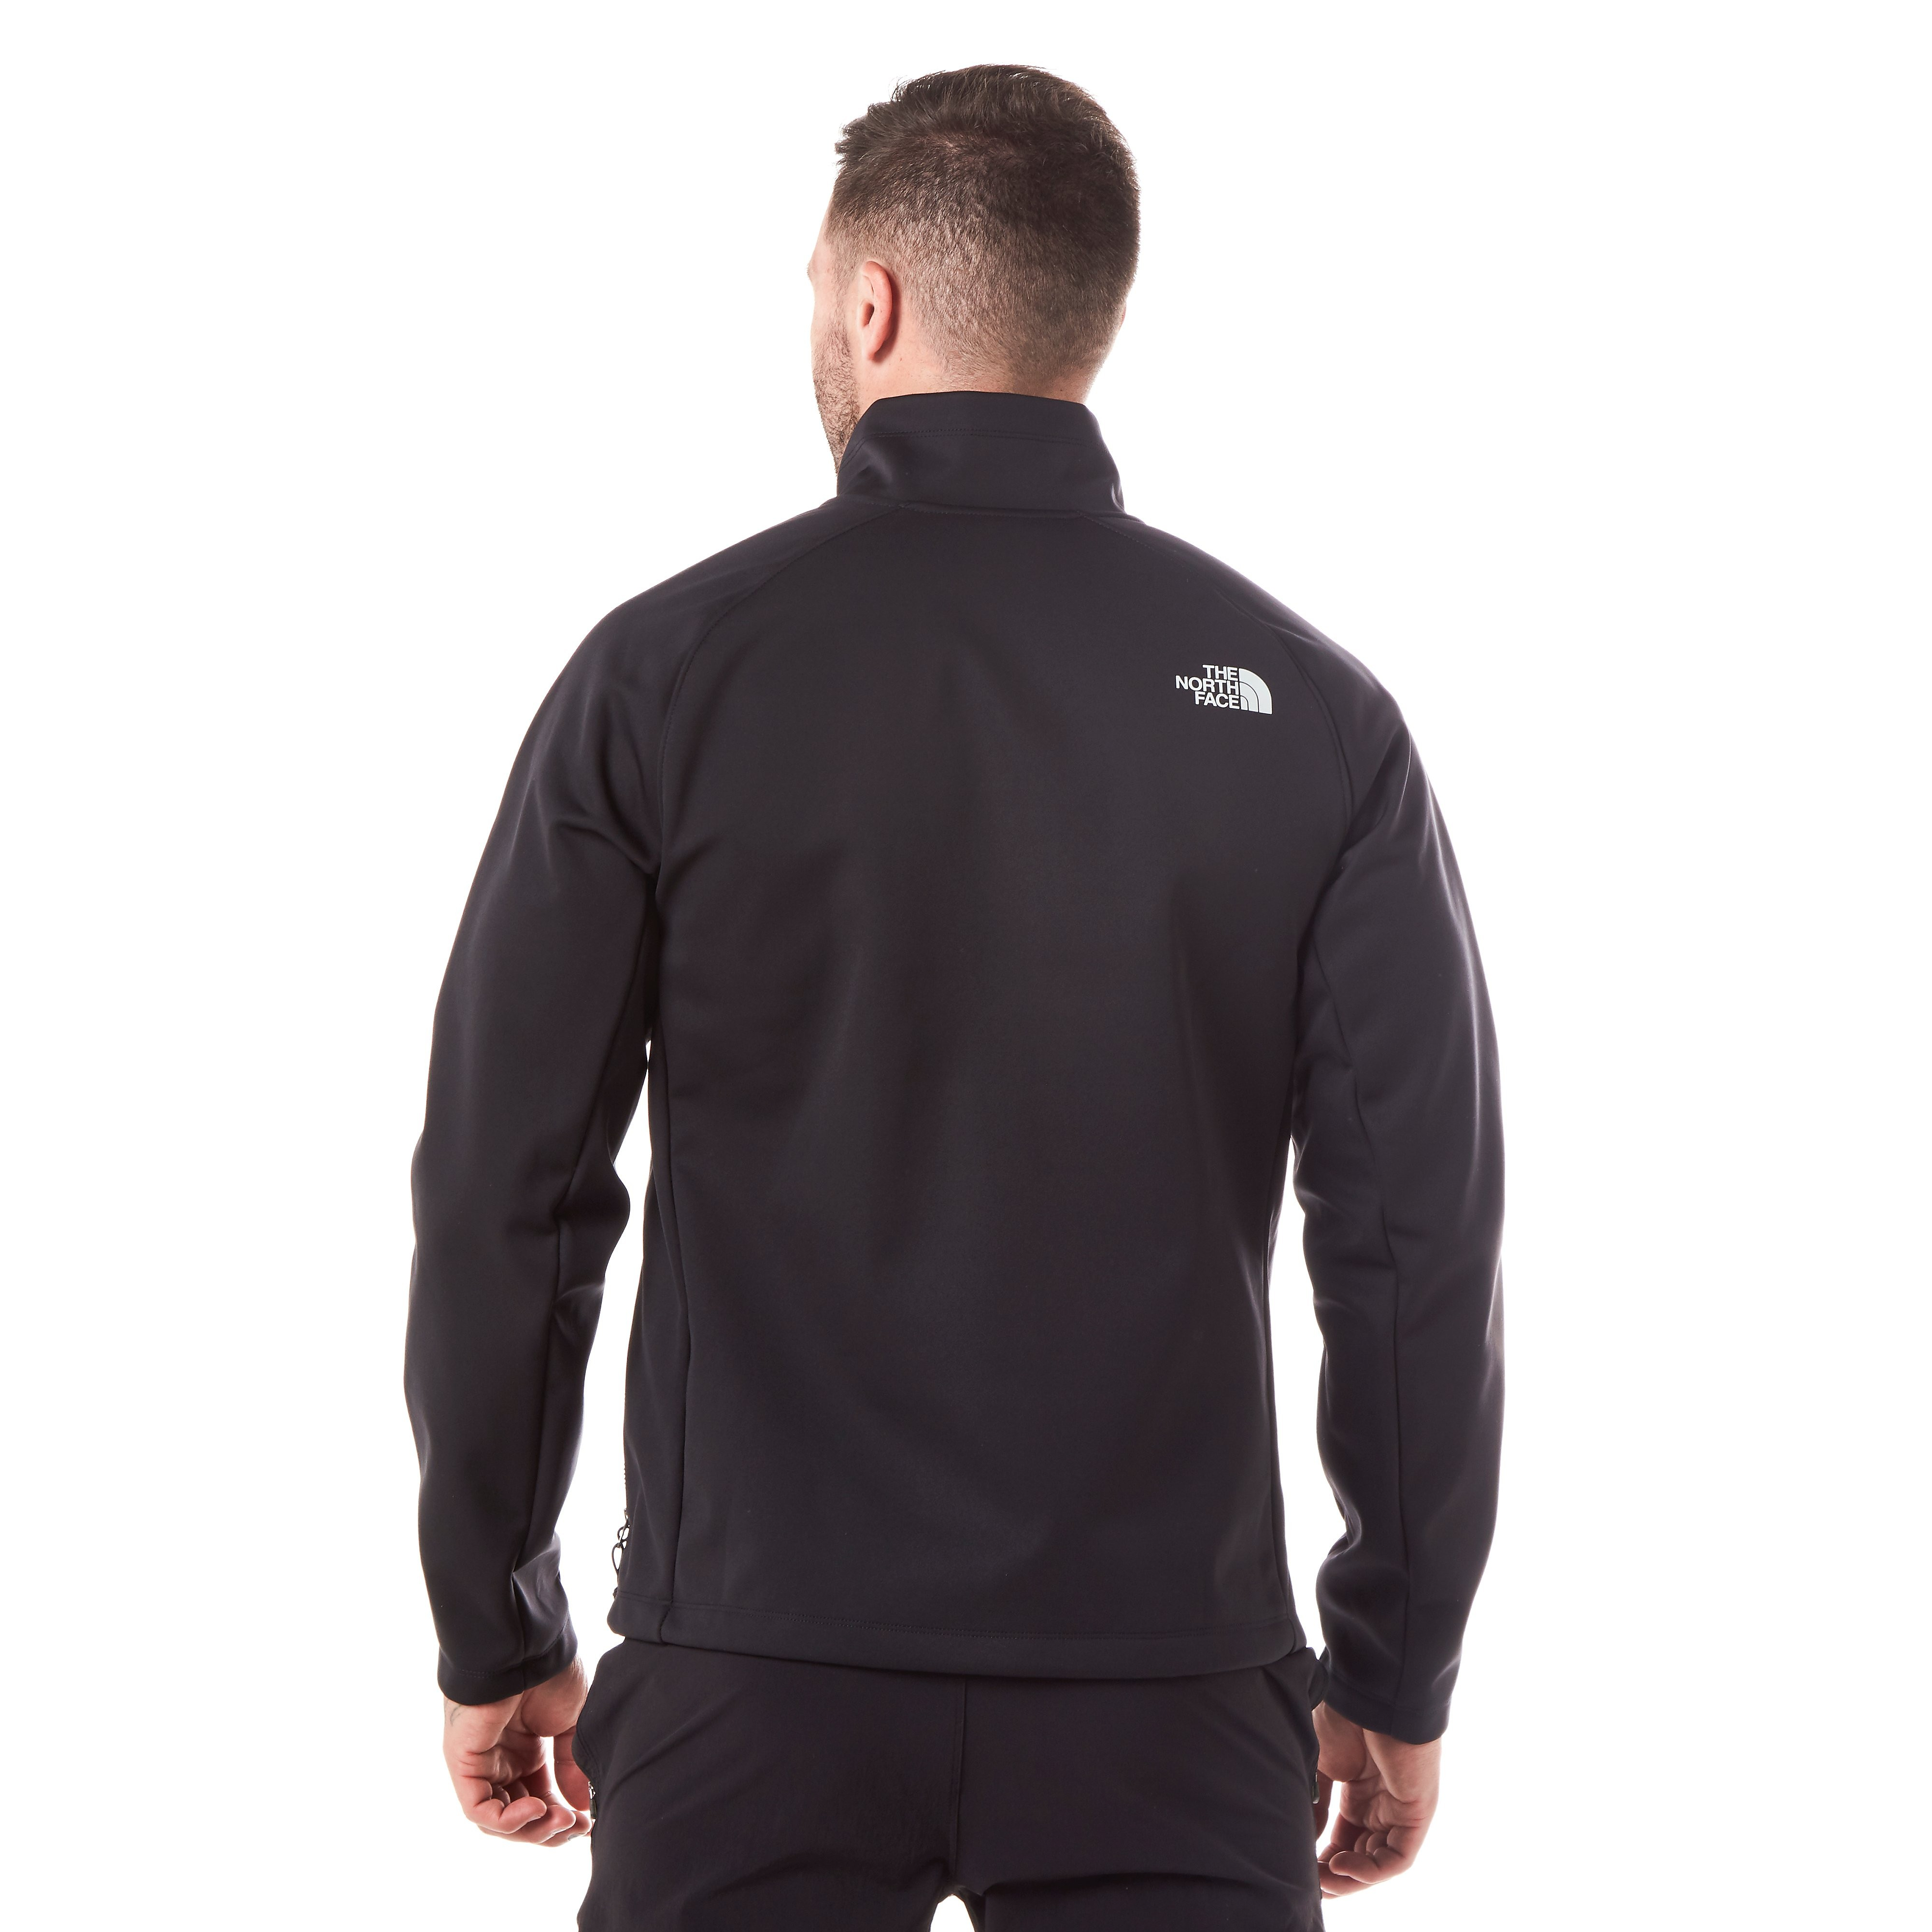 The North Face Canyonlands Softshell Men's Jacket